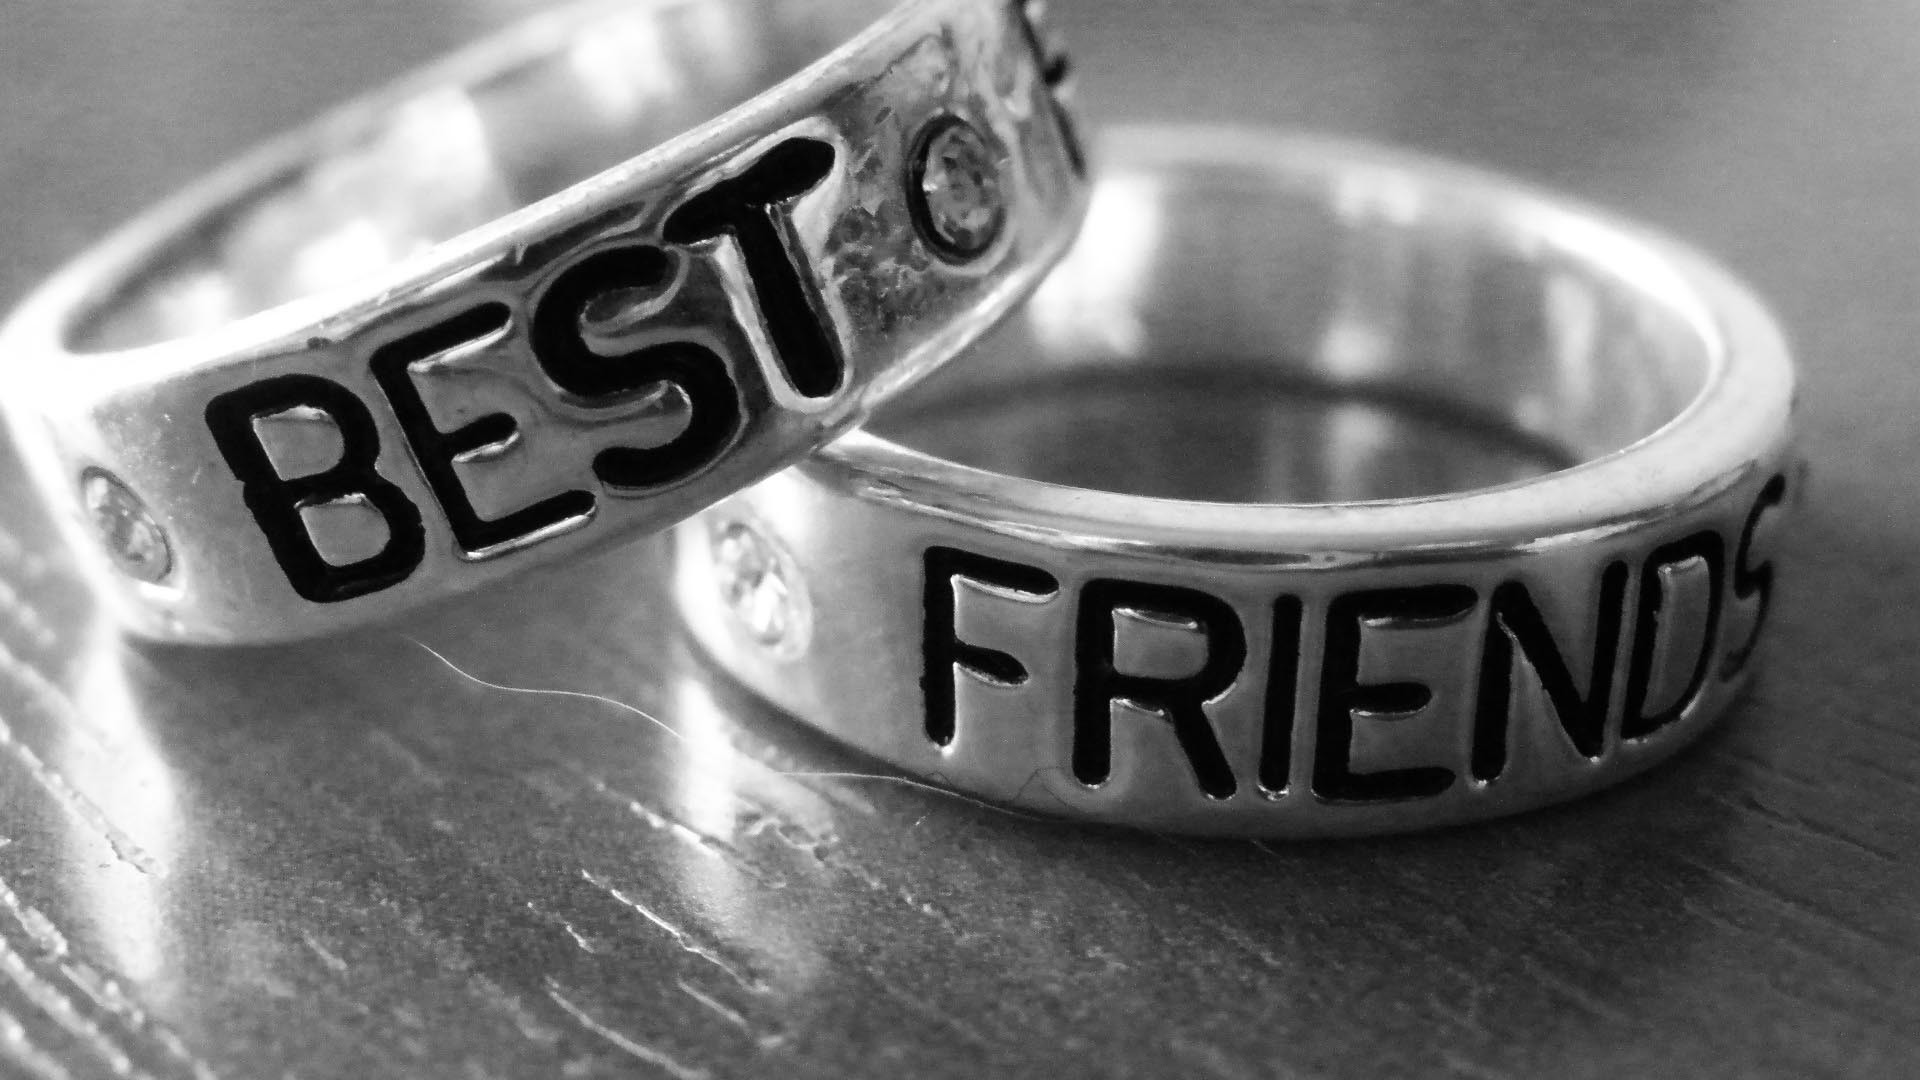 1920x1080 Best Friendship Quotes Free Hd Wallpapers Funniest Quotations